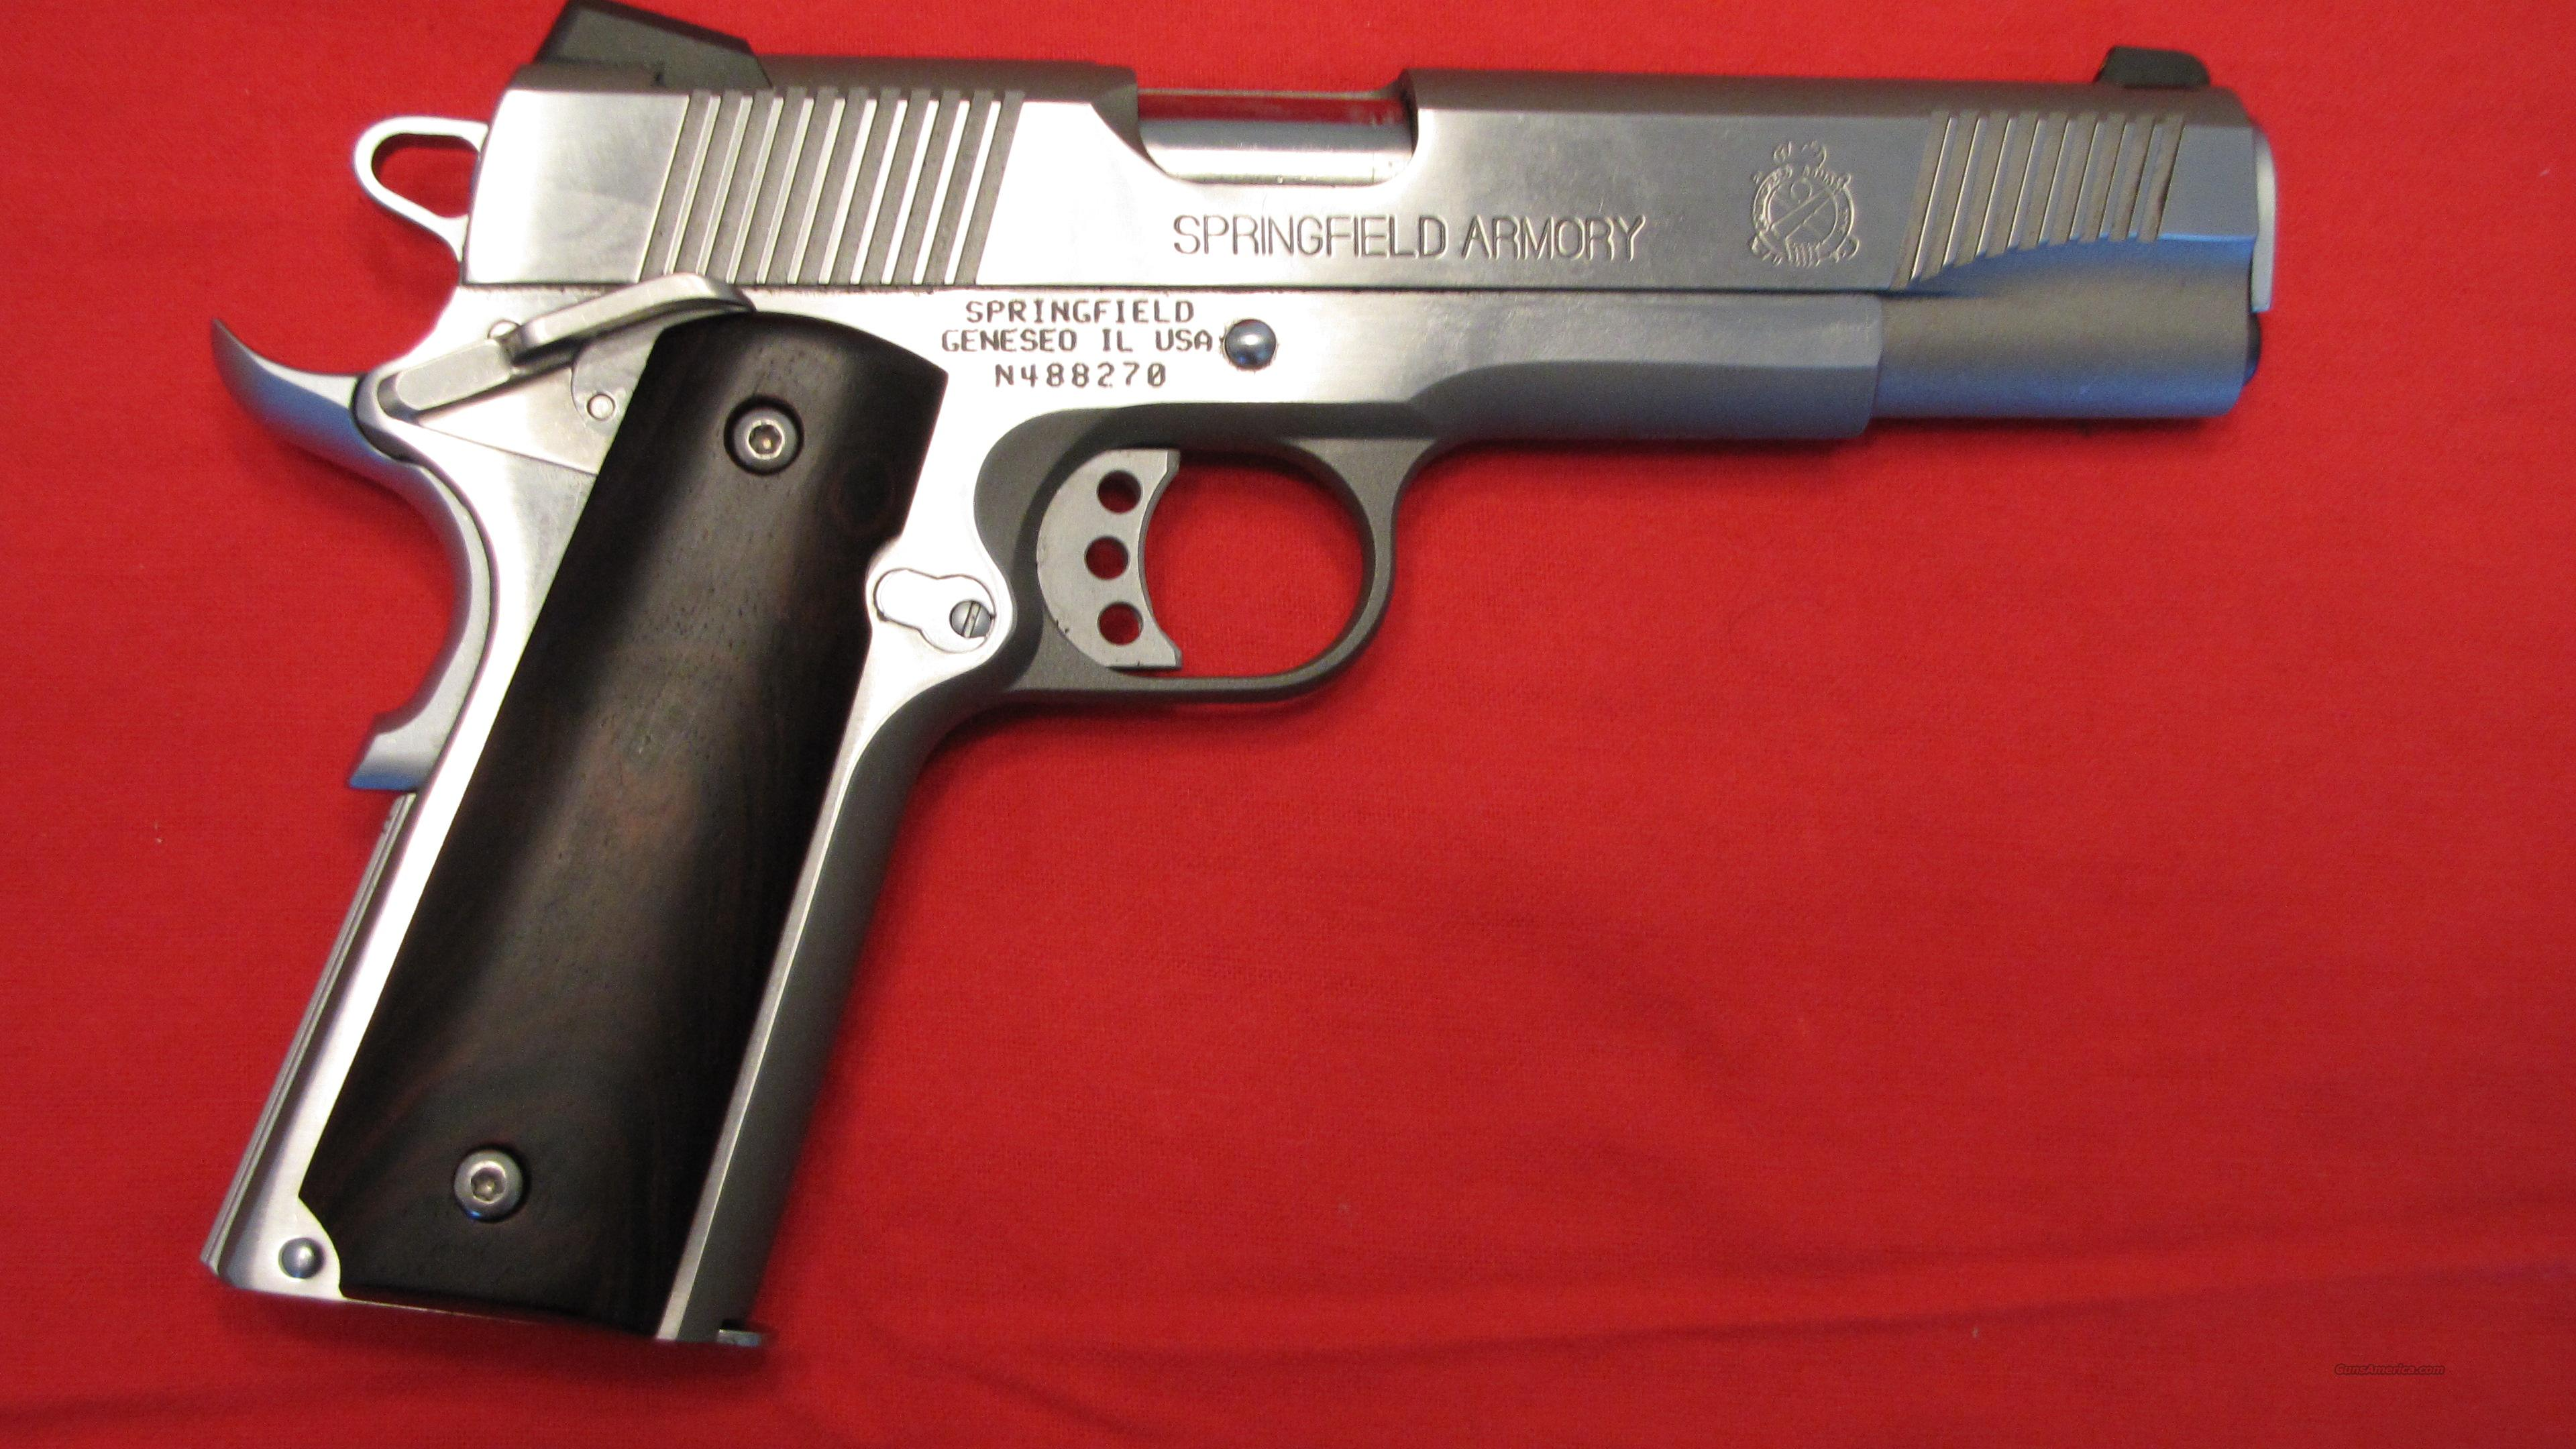 SPRINGFIELD ARMORY 1911-A1 45 CAL STAINLESS STEEL   Guns > Pistols > Springfield Armory Pistols > 1911 Type